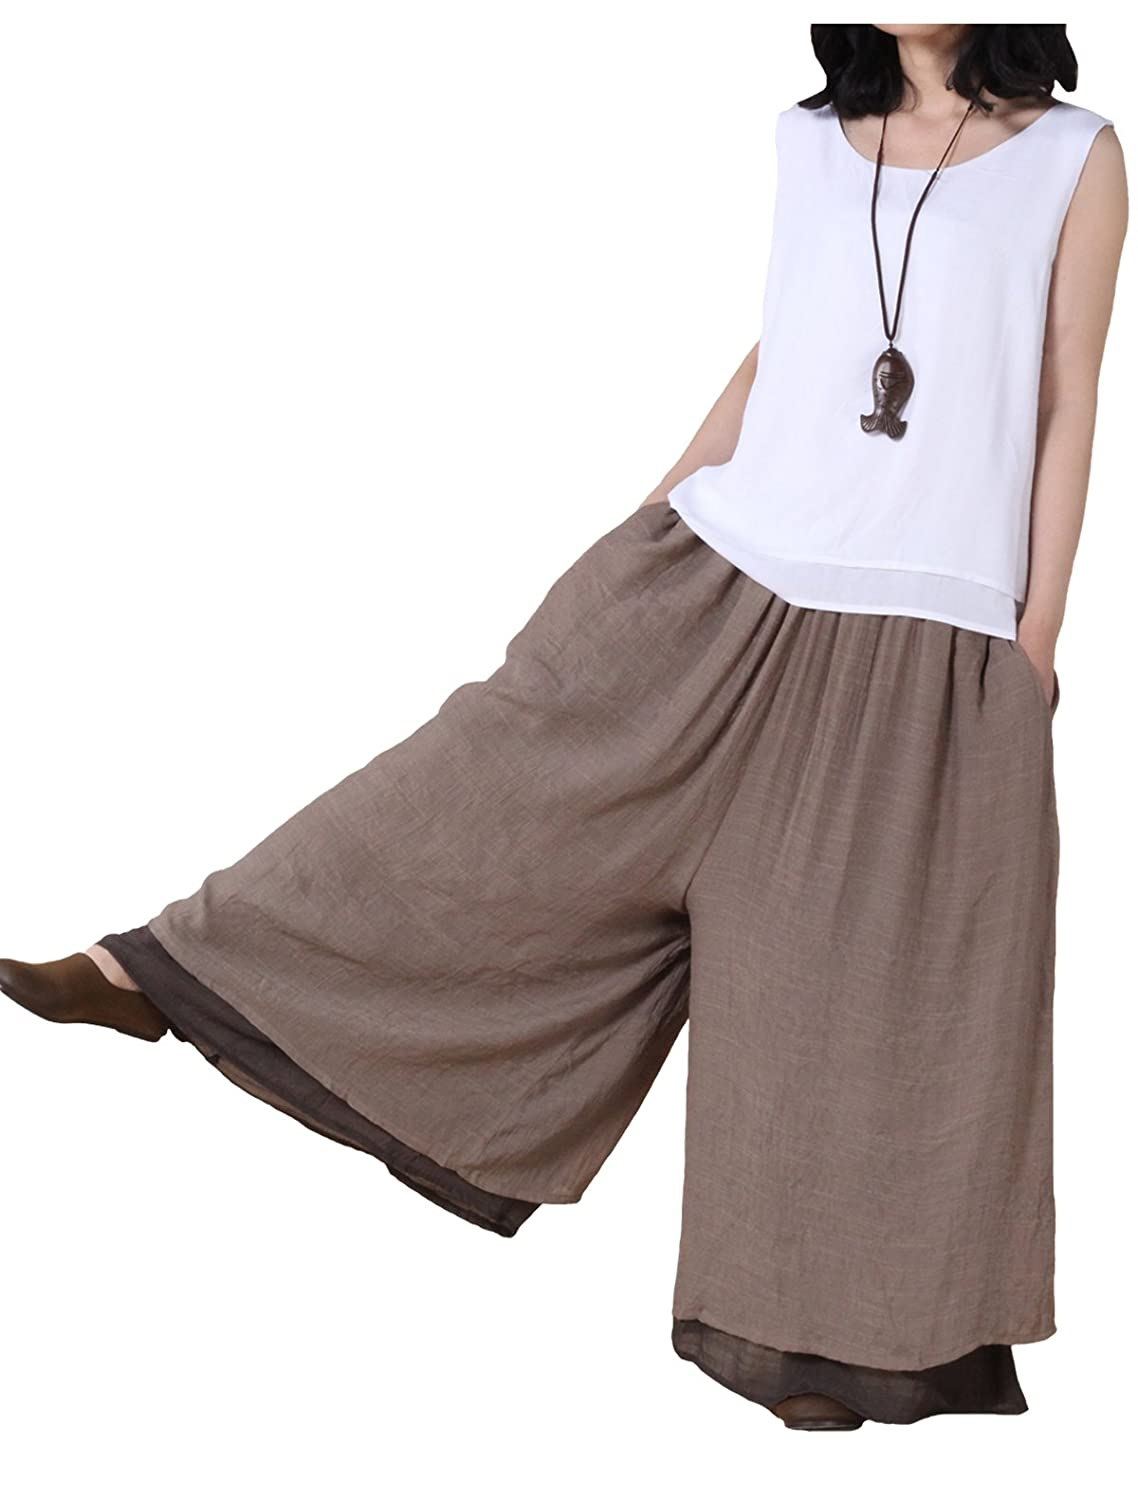 Women's Casual Double Layer Khaki-on-Black Loose Fit Wide Leg Cotton Chinese Pirate Pants by Mordenmiss - DeluxeAdultCostumes.com